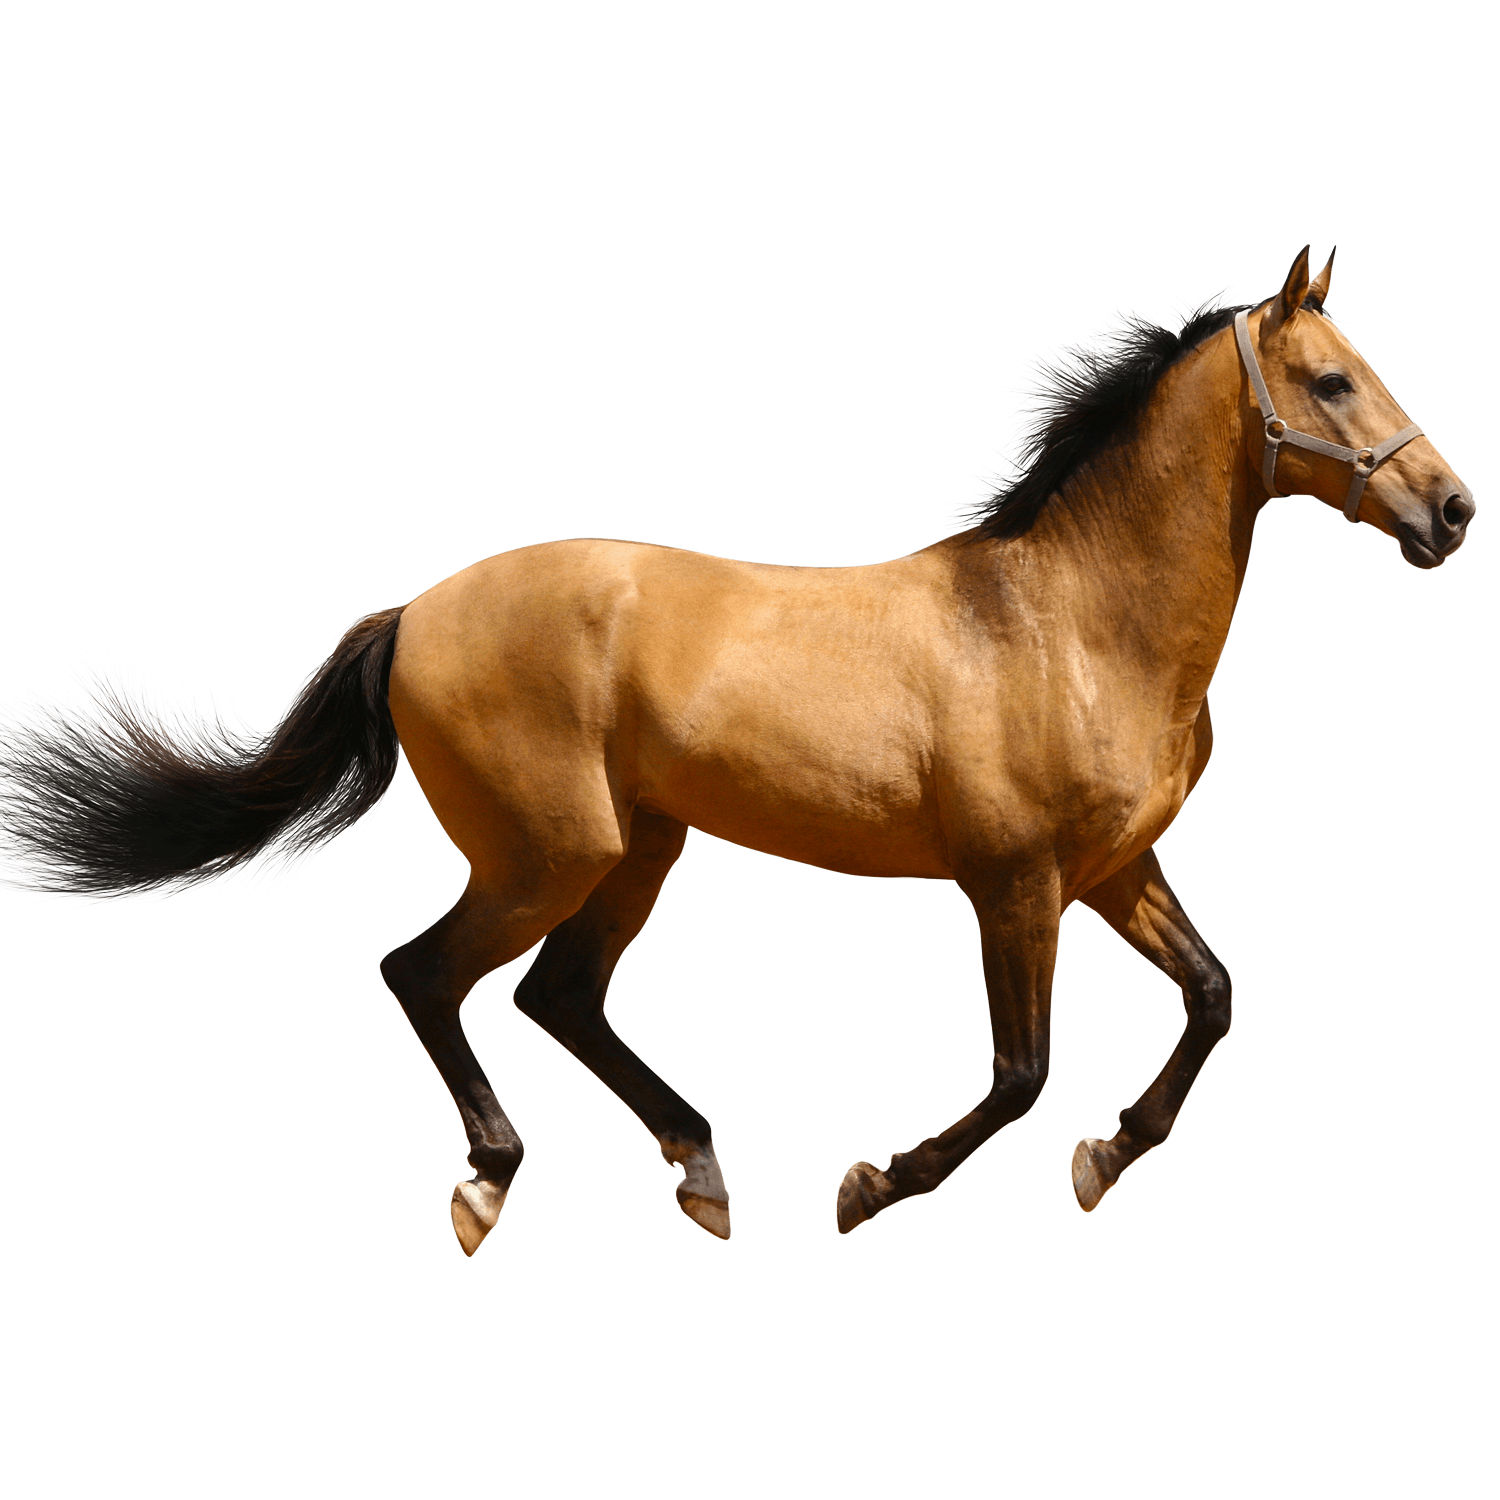 Stick figure horse png. Running brown sideview transparent